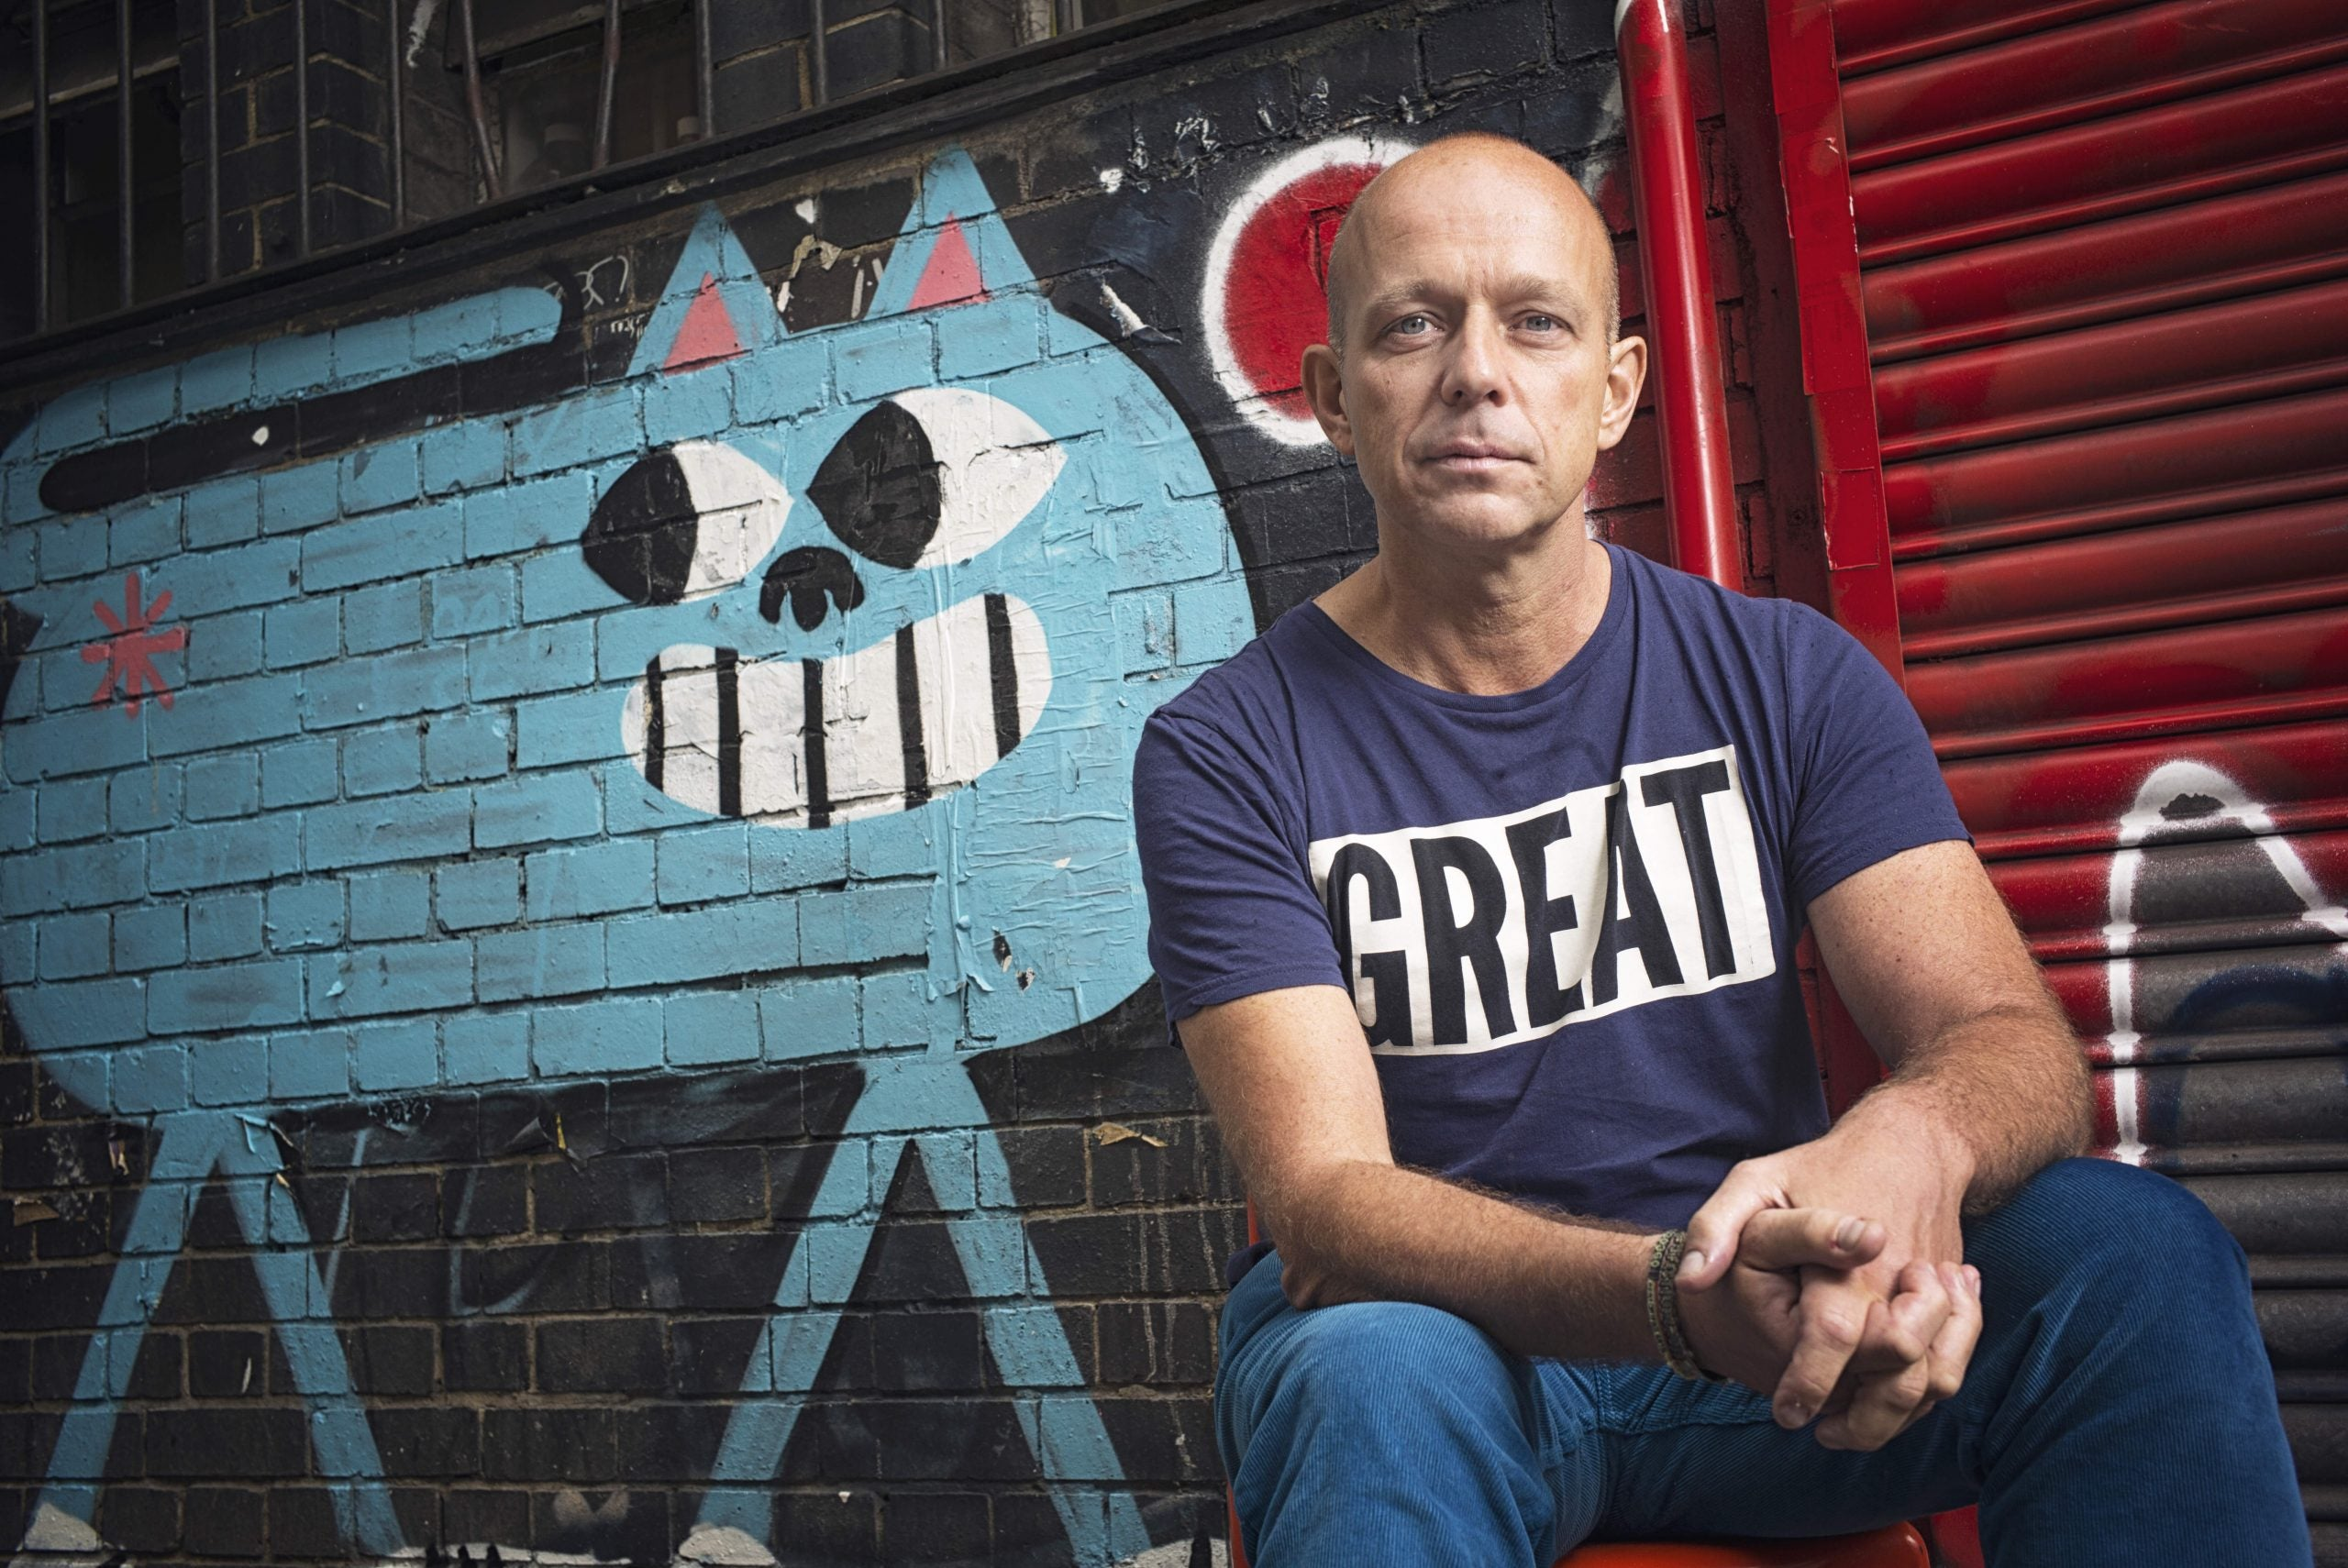 Kind of blue: why Steve Hilton's manifesto is a challenge to the left